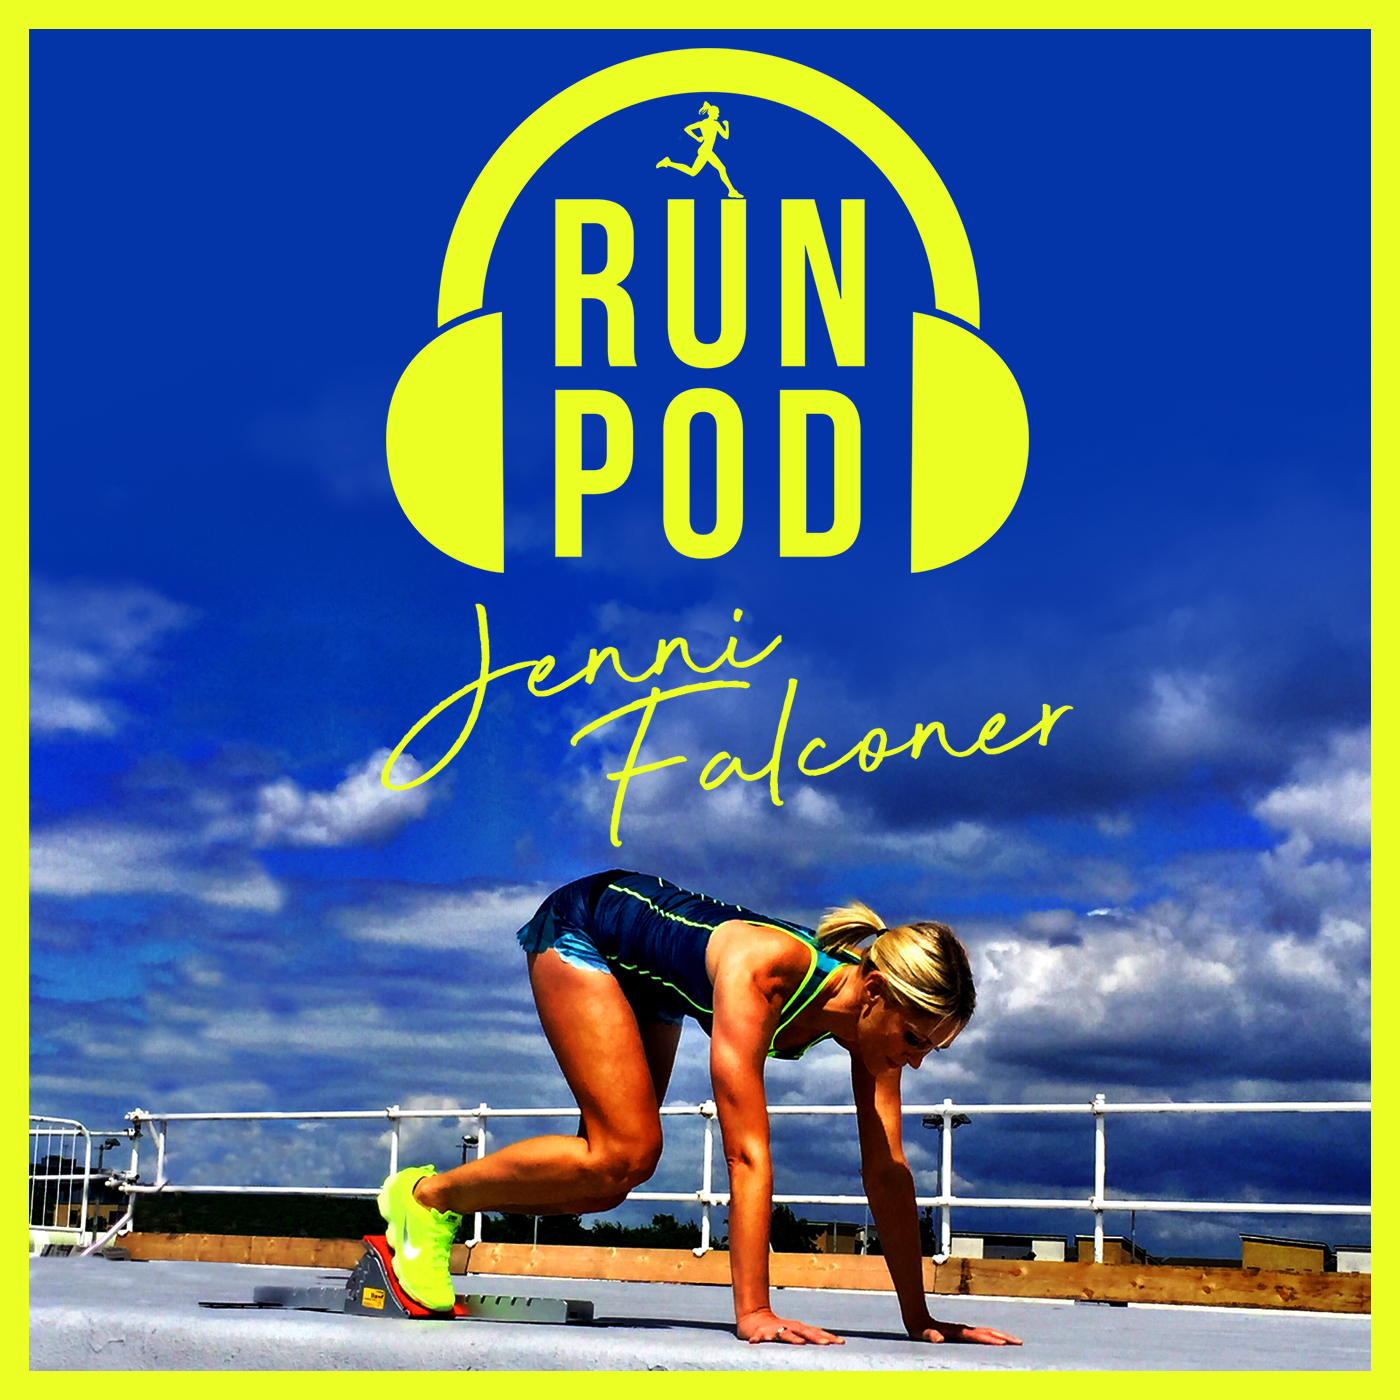 RunPod Summer Break 2019 - Gone Running - Back Soon!